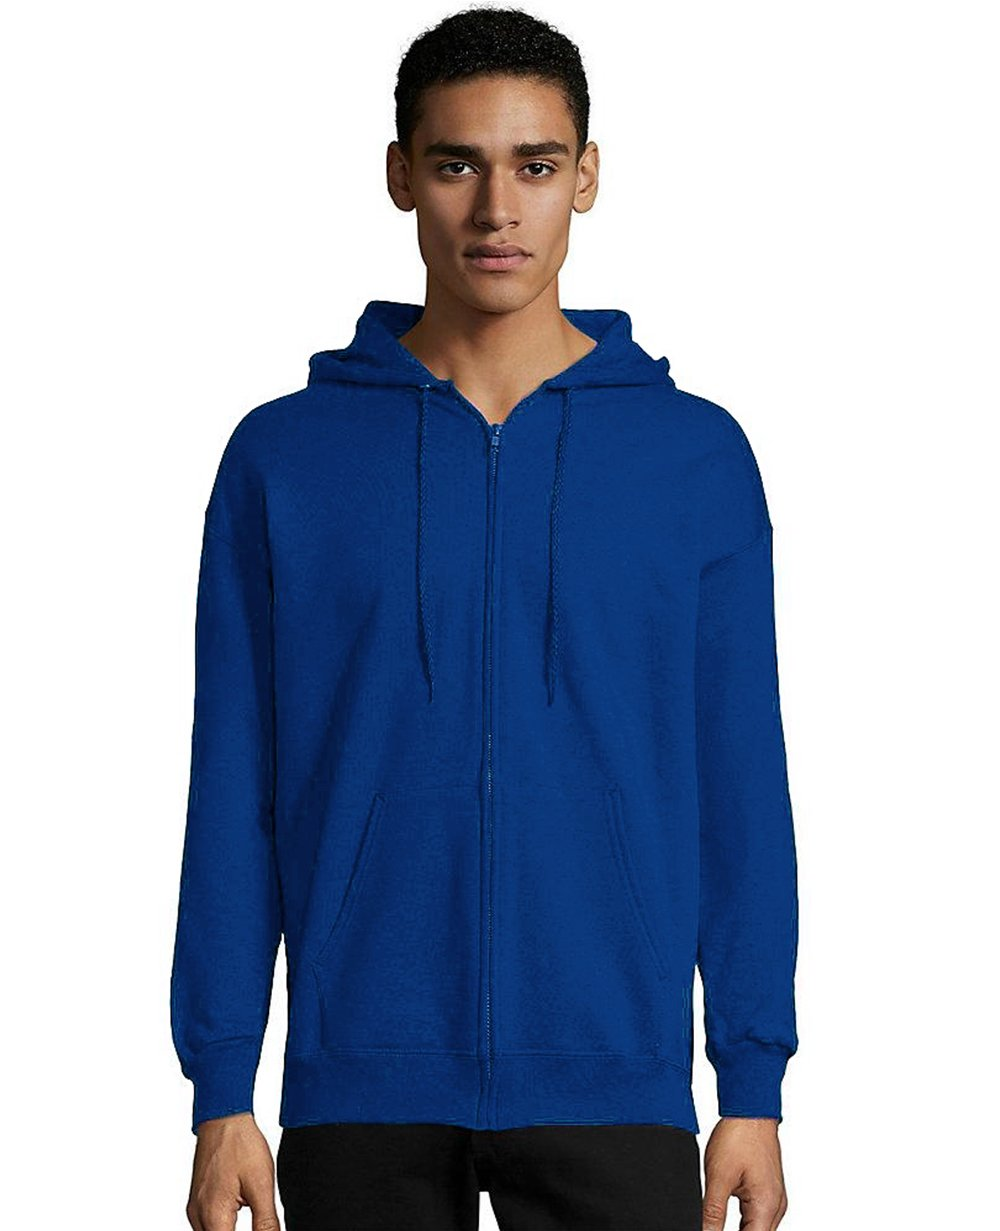 Zip-up Hoodie in Deep Royal